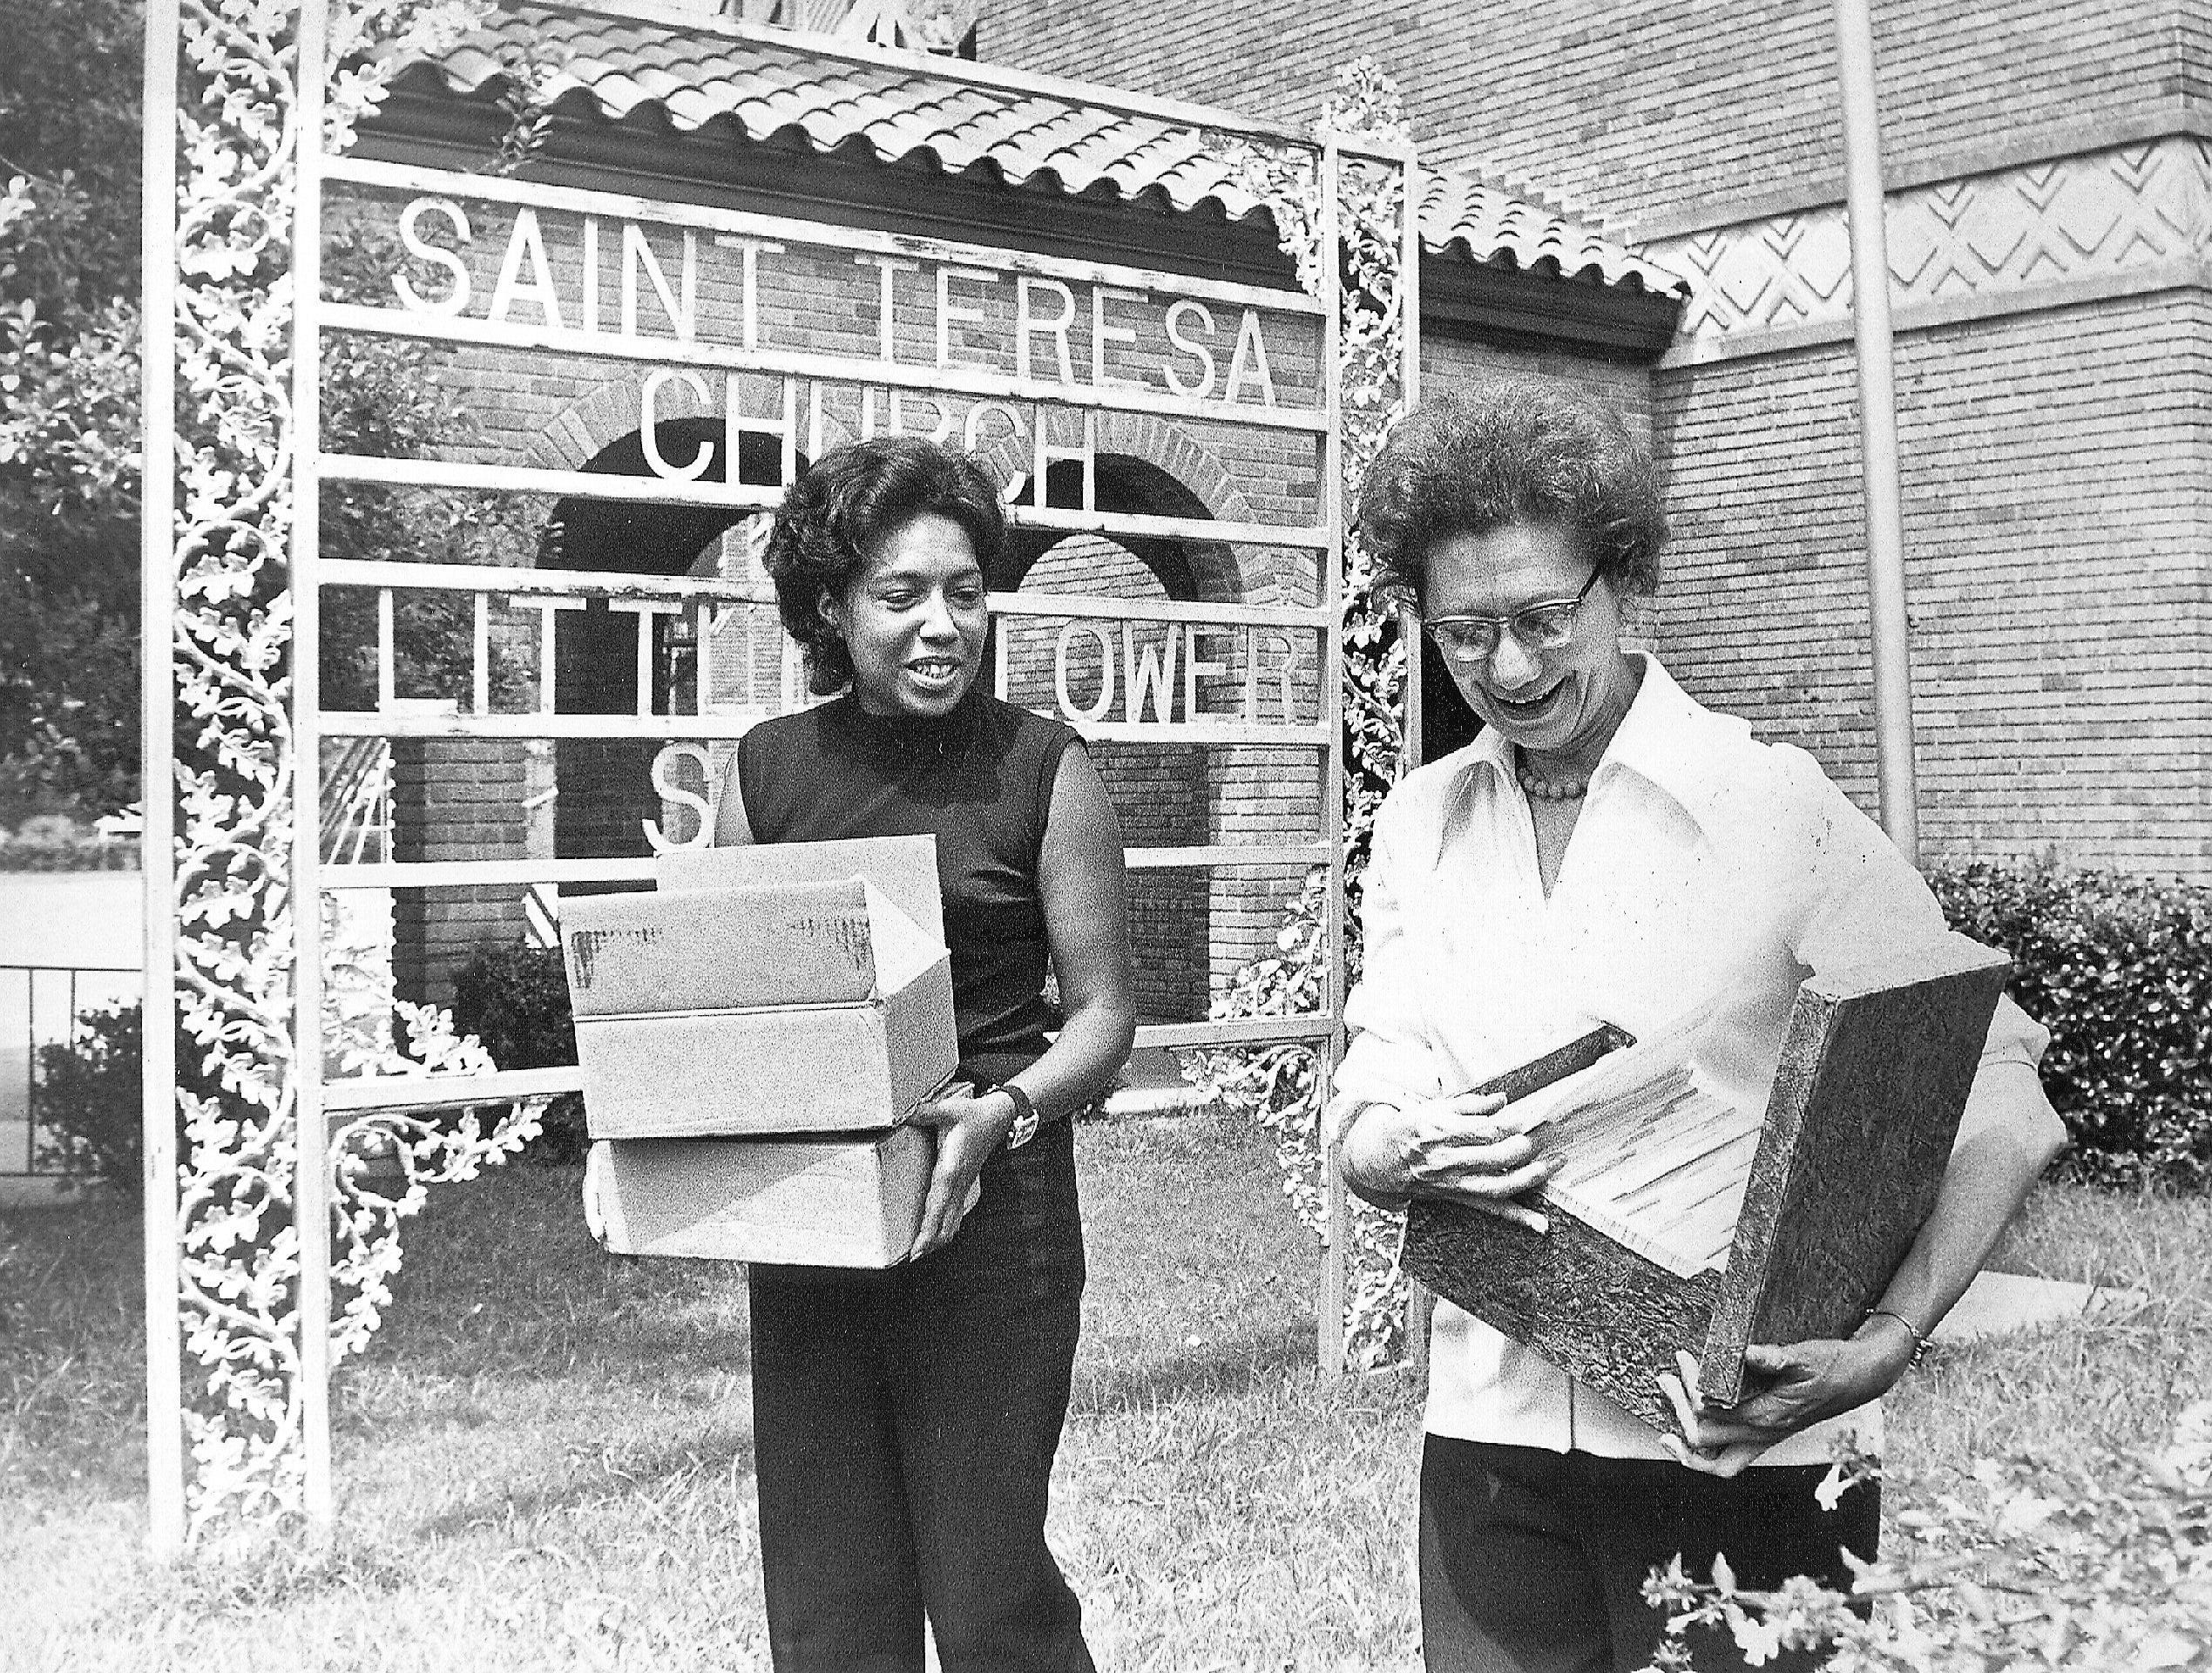 Mrs. Harry Thompson, left, of 1936 Edwards and Miss Margaret Dichtel of 893 Oakmont Place are driving forces in the Vollintine-Evergreen Community Action Association (VECCA) on 17 Aug 1971. Miss Dichtel is chairman of the organization.